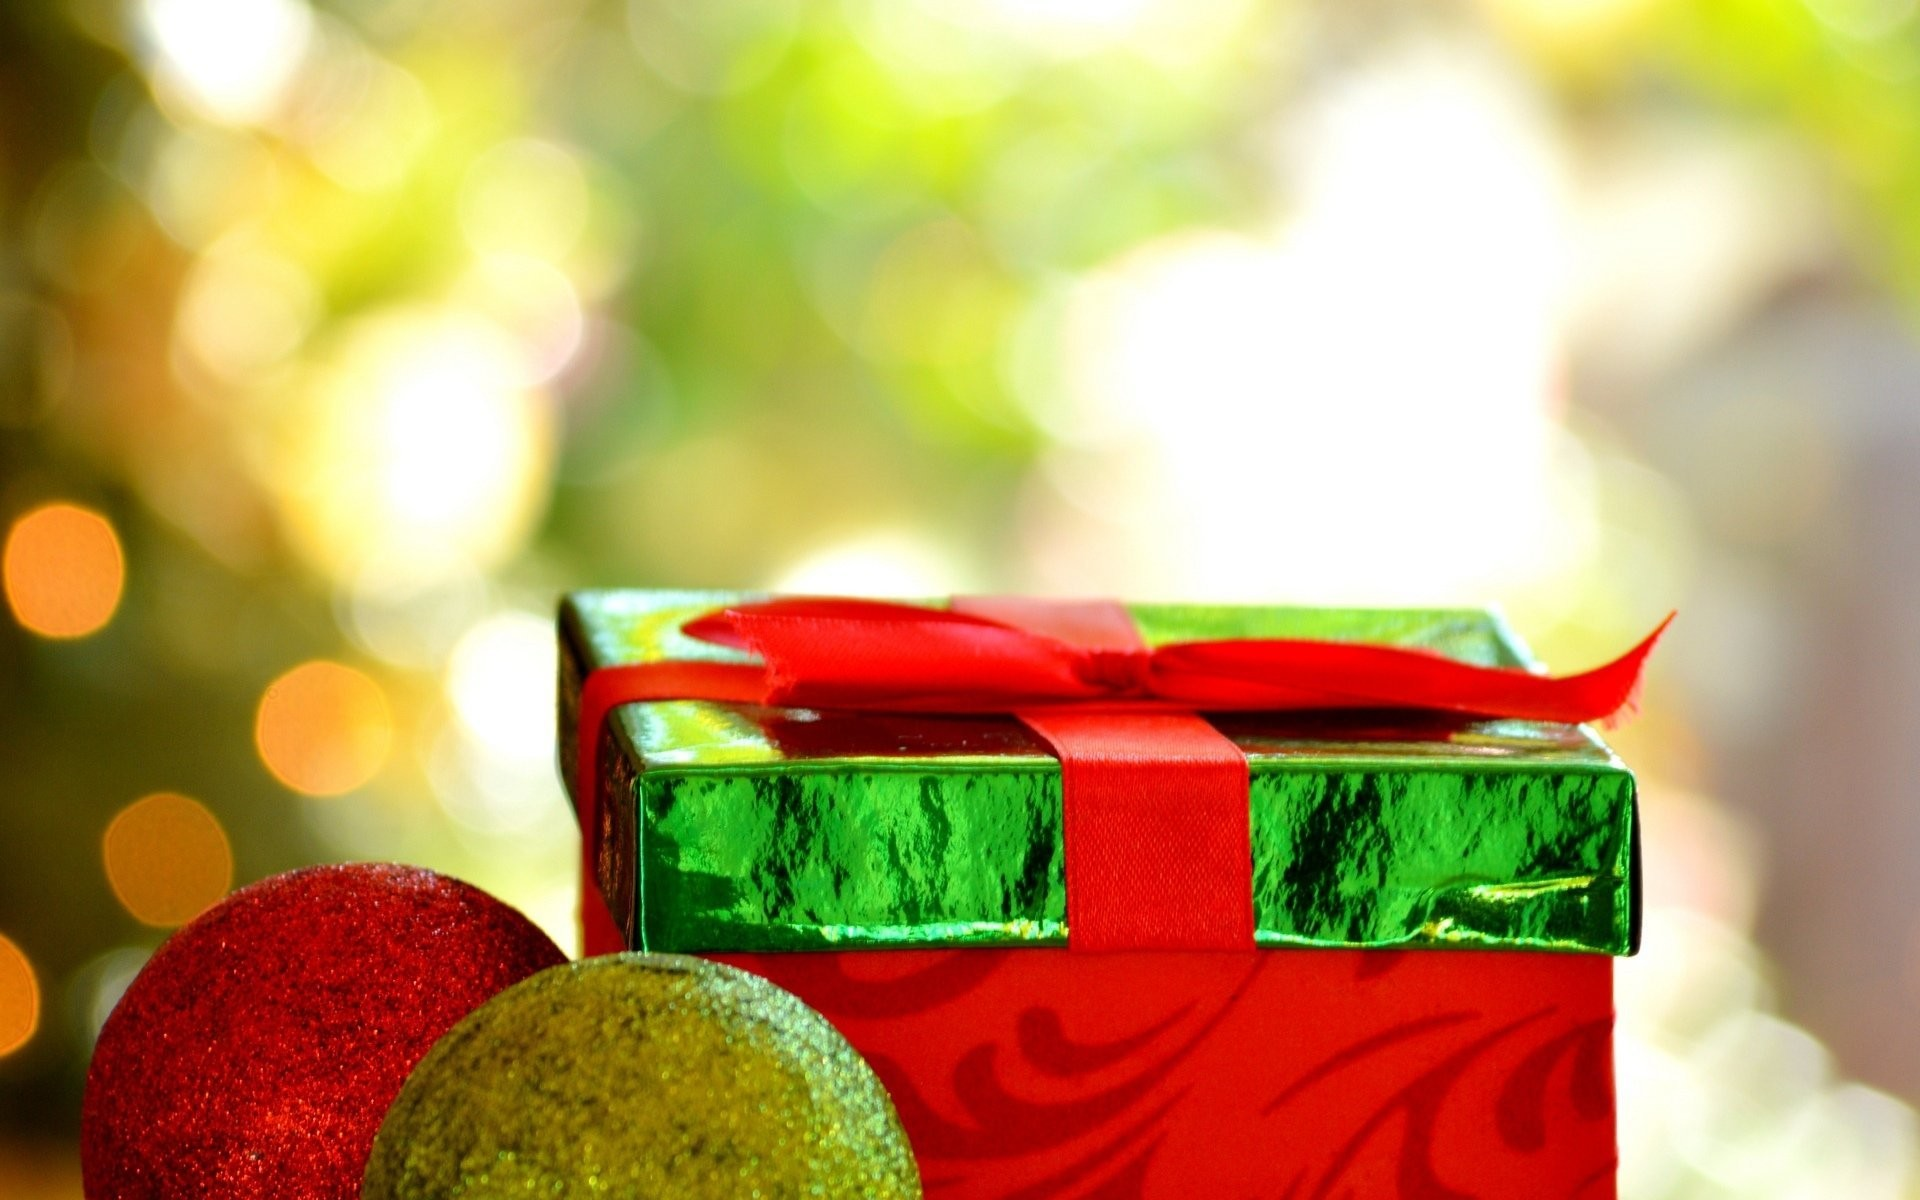 new year holiday present red green present new year christmas christmas  decoration ball bokeh background wallpaper